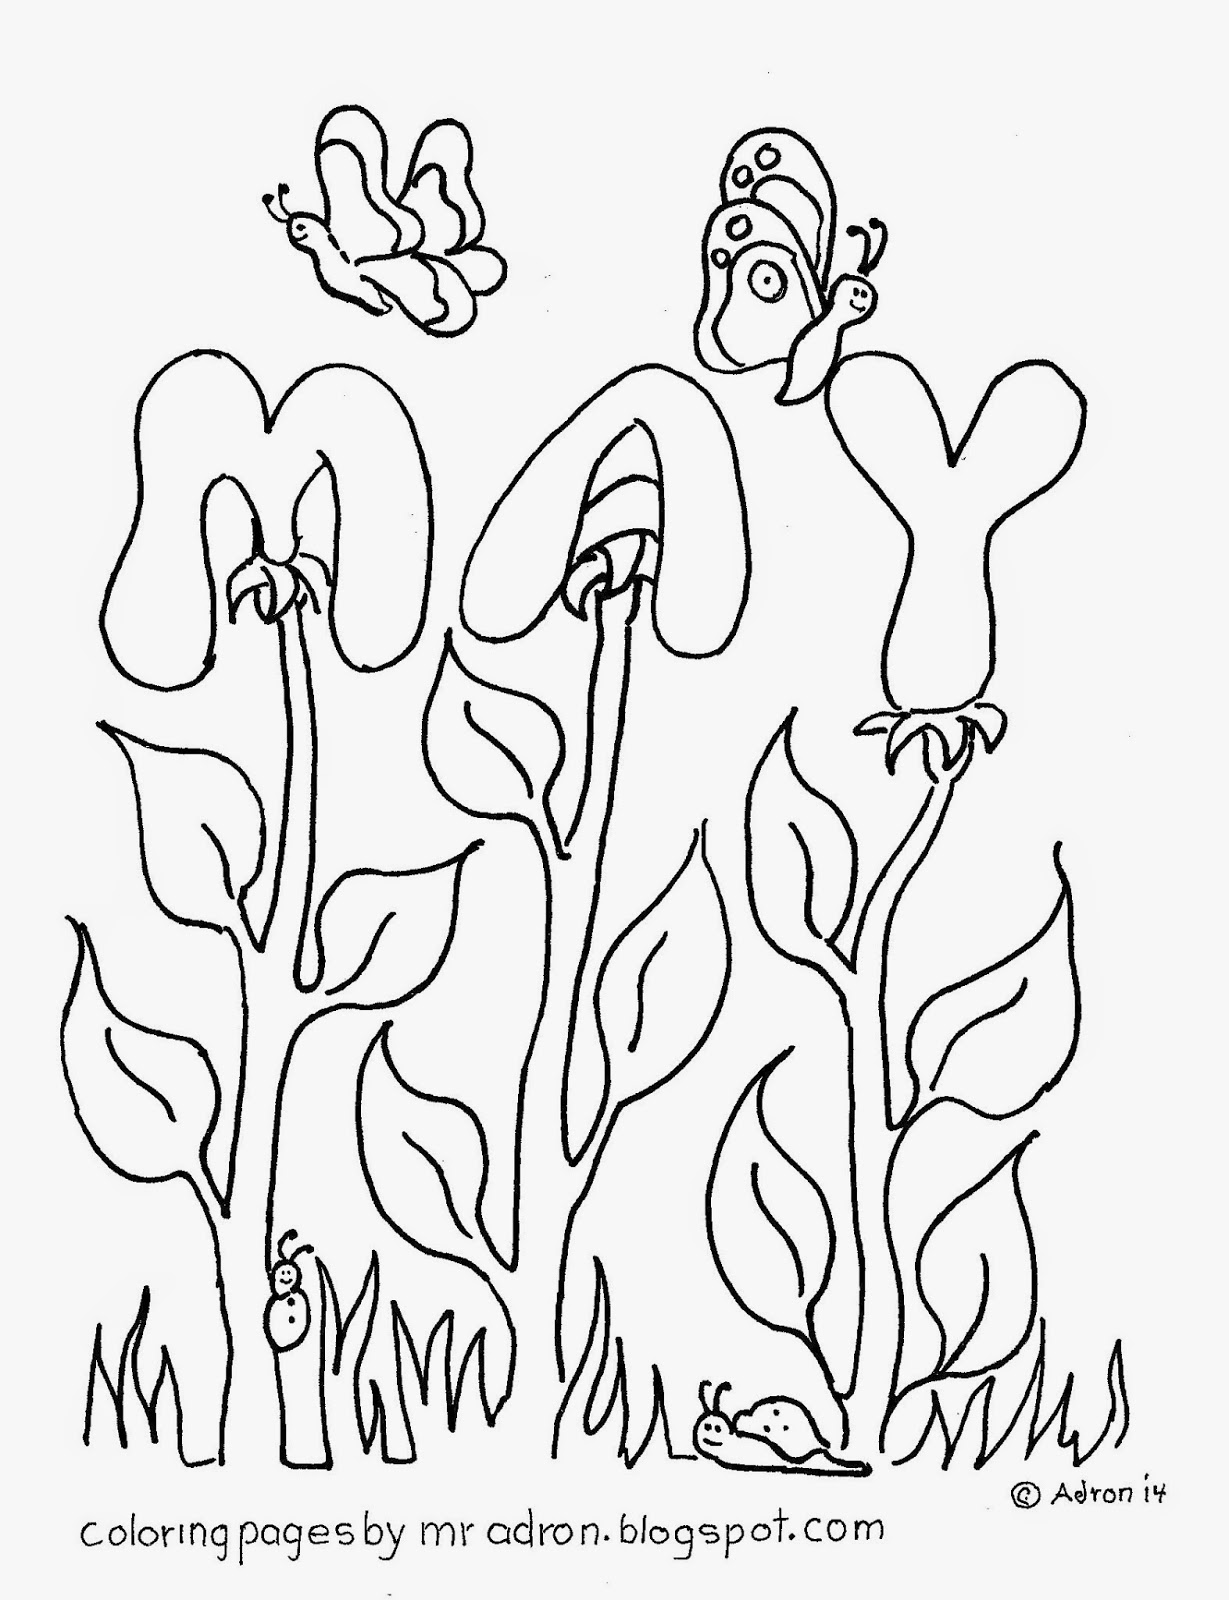 Coloring Pages for Kids by Mr. Adron: The Month Of May